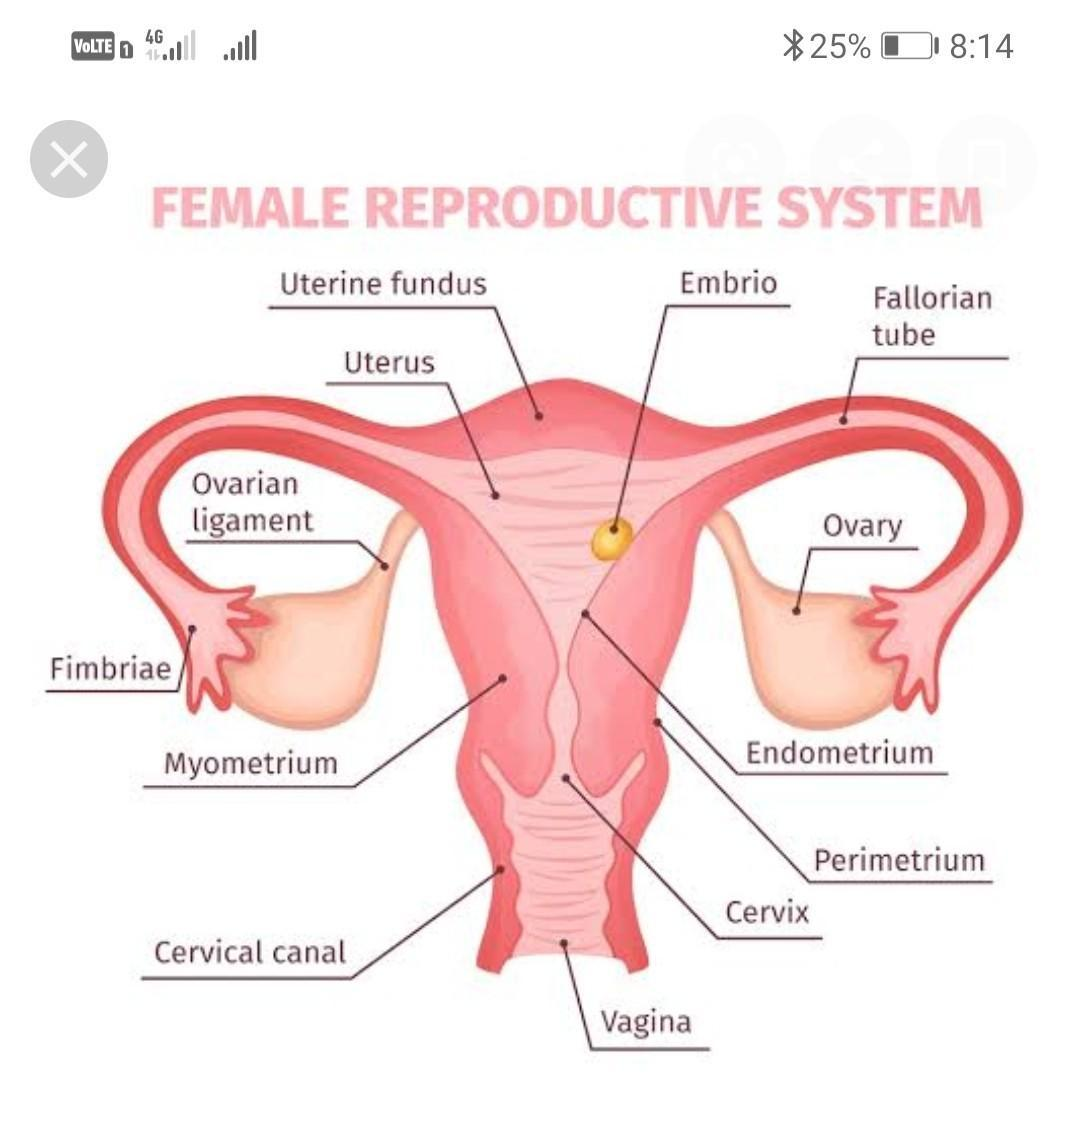 A Draw A Sectional View Of Human Female Reproductive